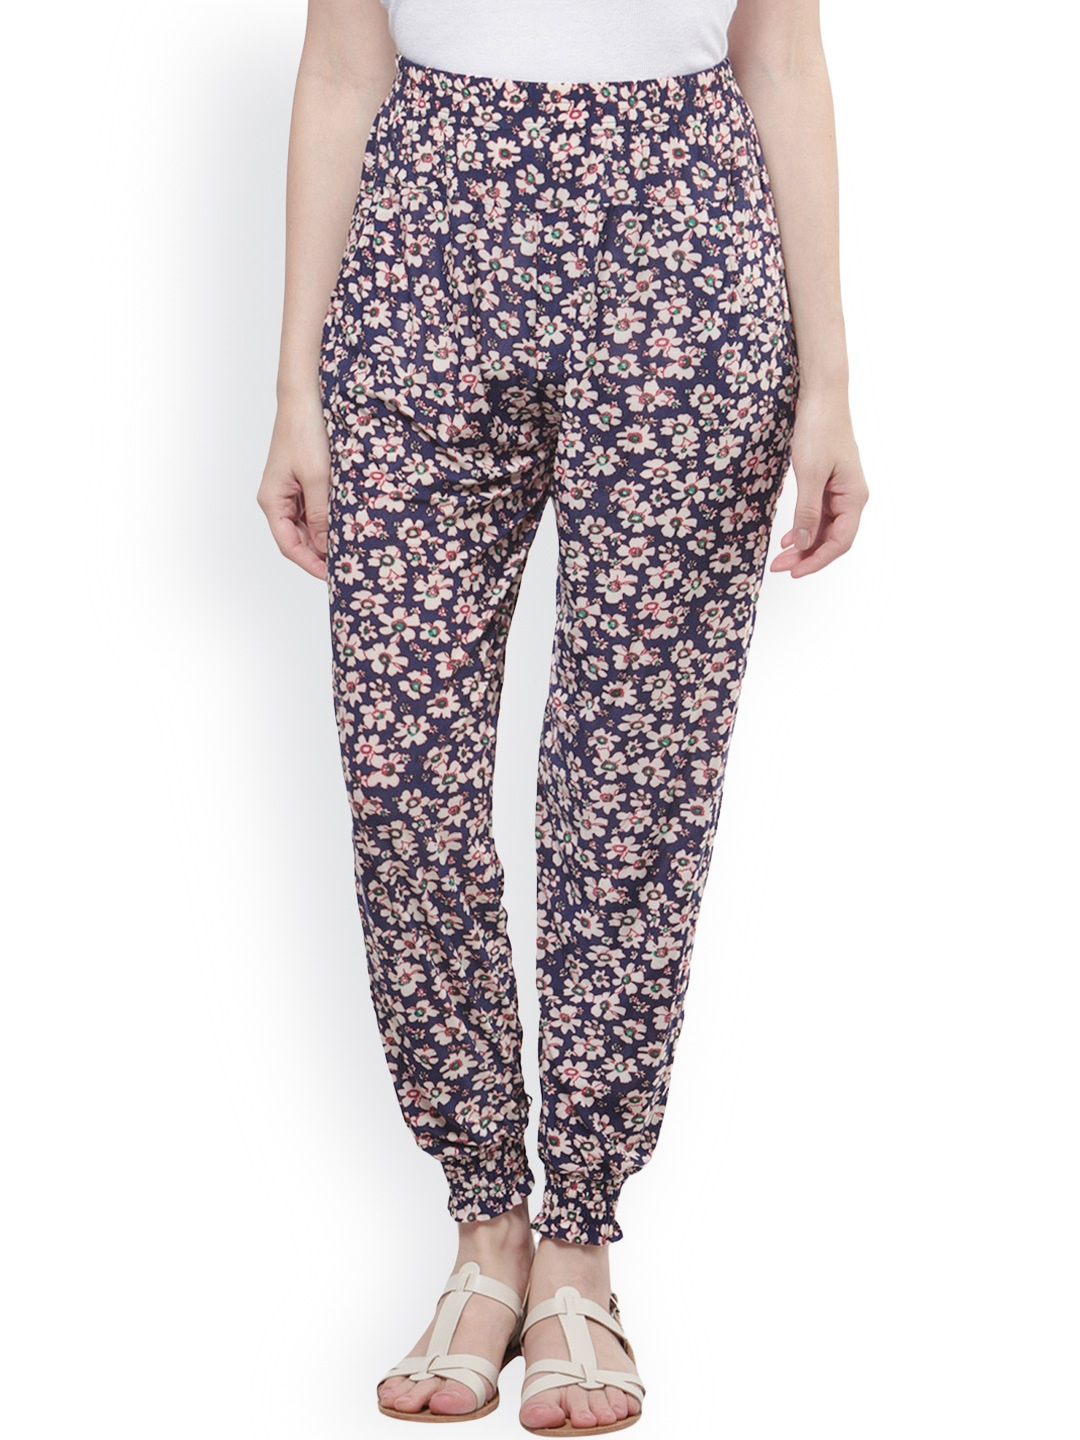 Elegant Myntra Sakhi Sang Women Multicoloured Printed Harem Pants 806804  Buy Myntra